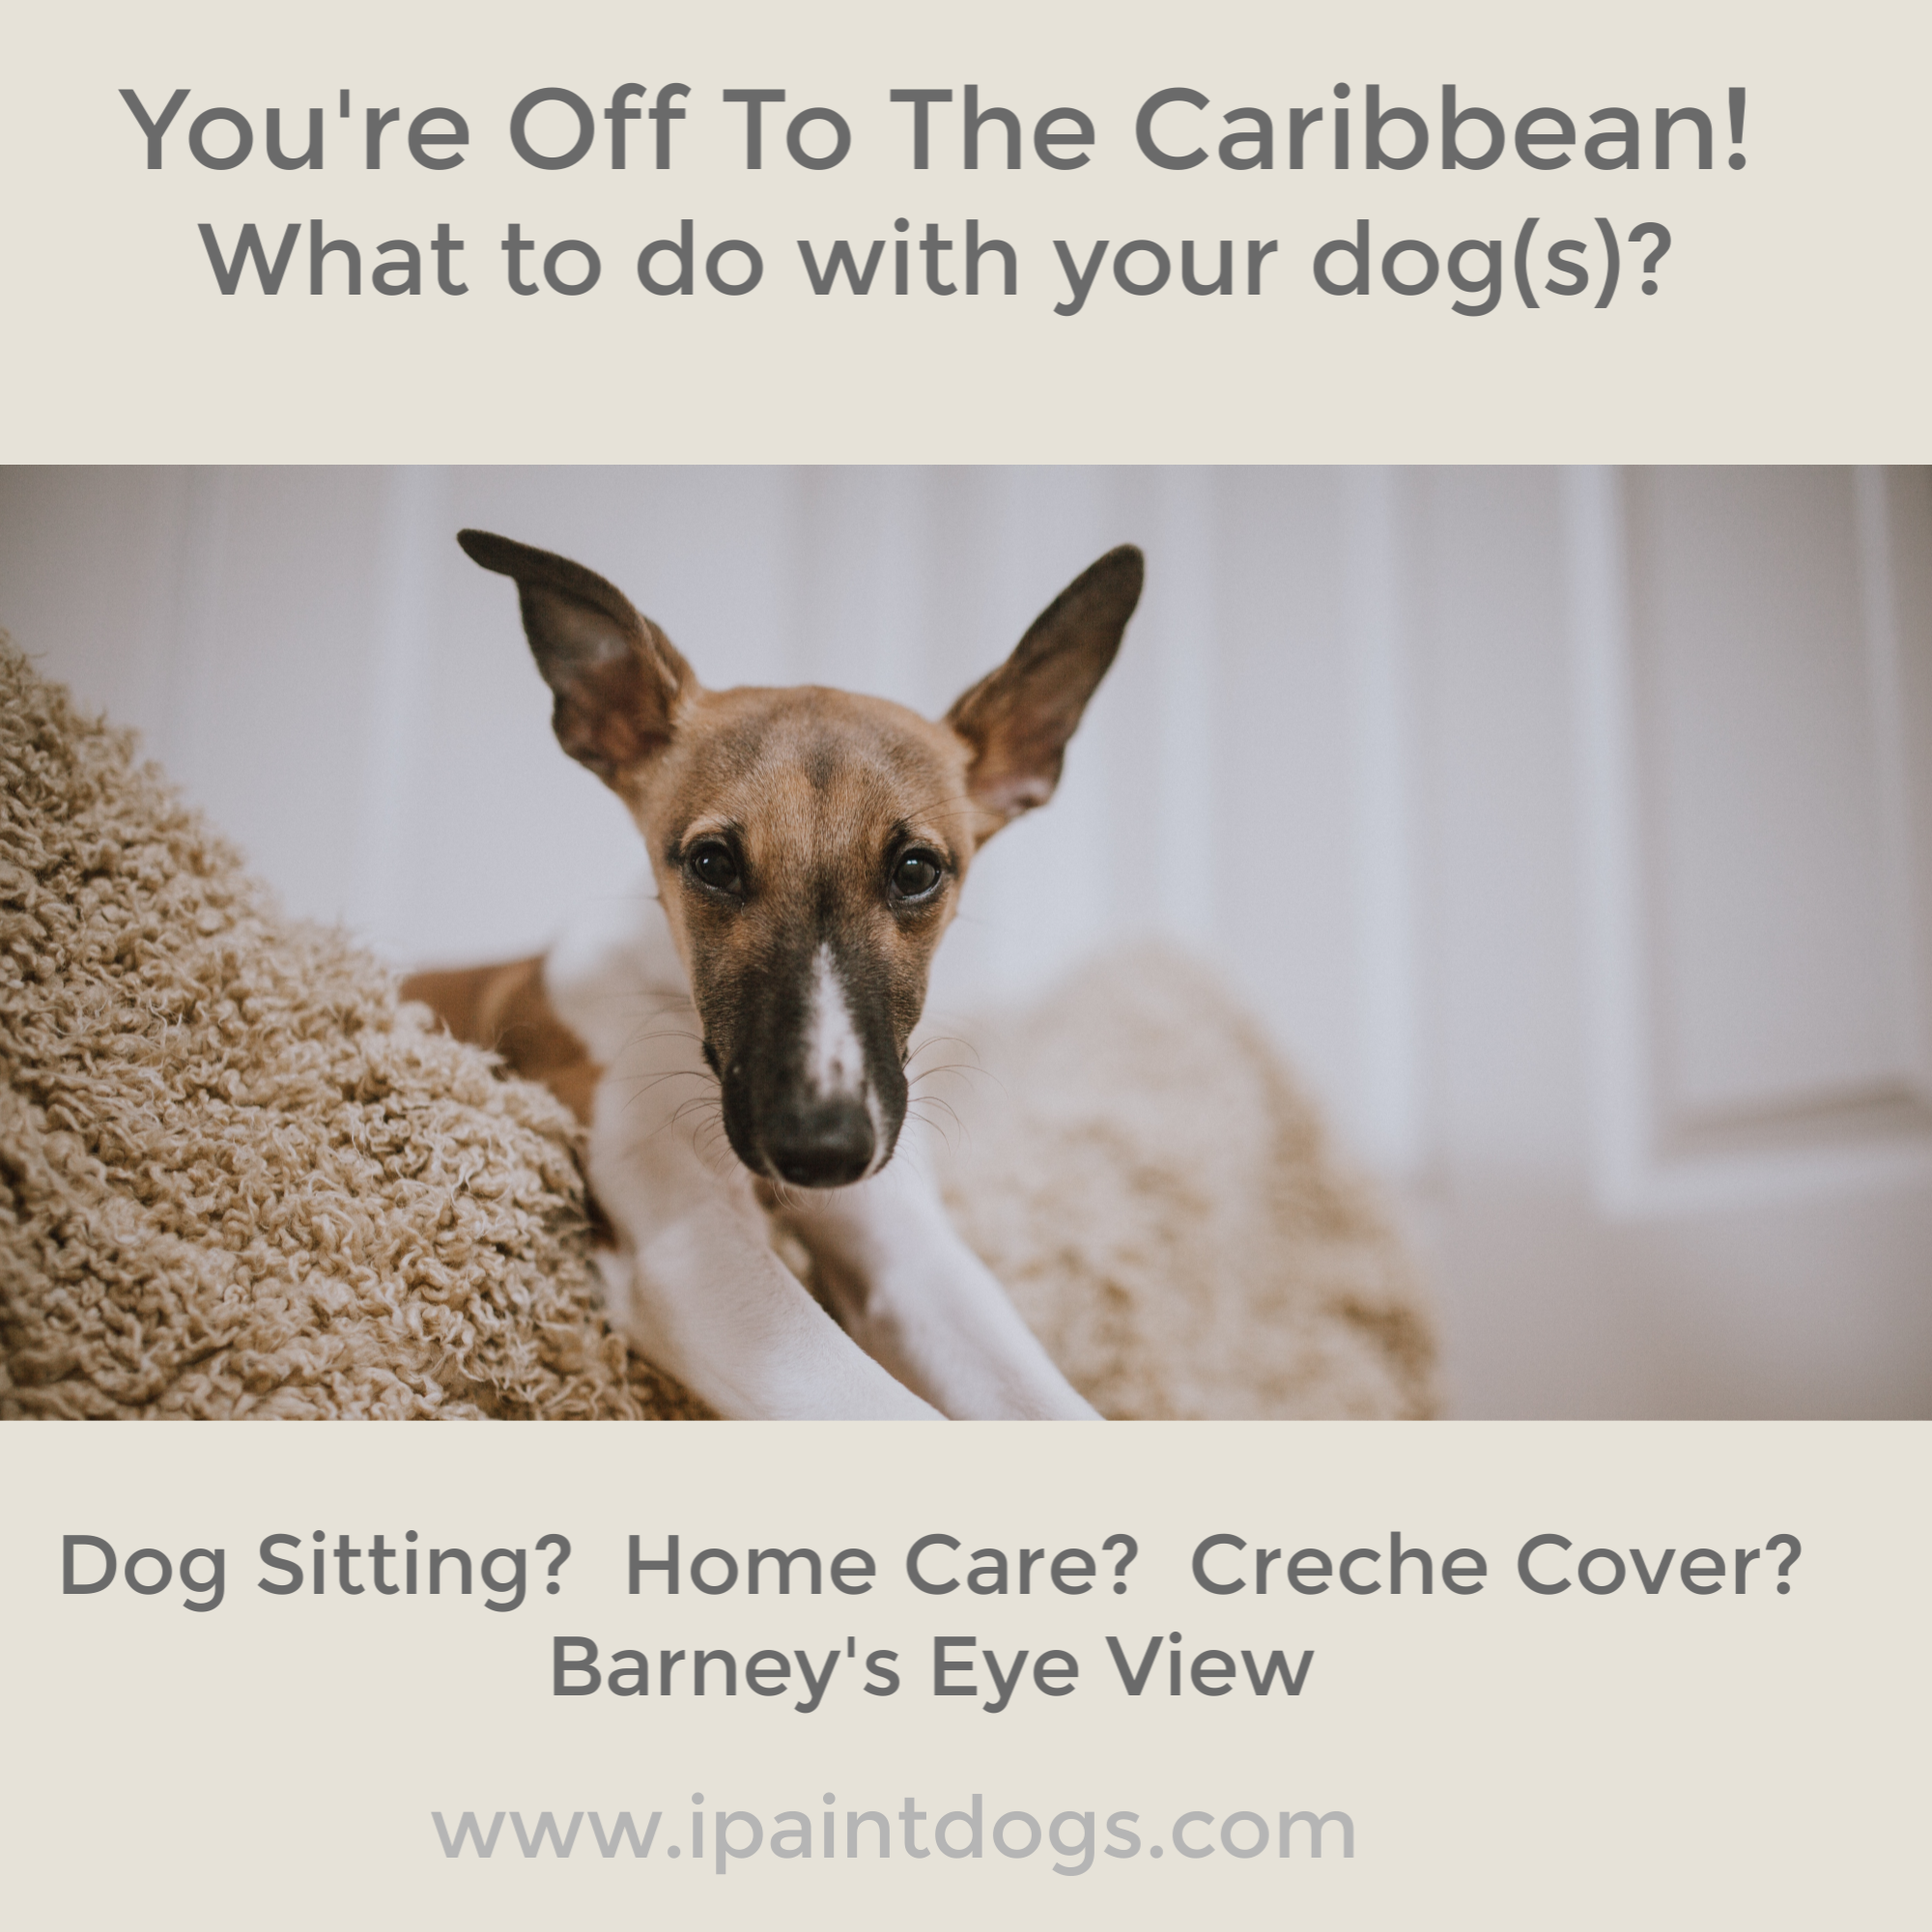 Dog Sitting Options, Holiday Care for dogs, Samantha Barnes, ipaintdogs.com